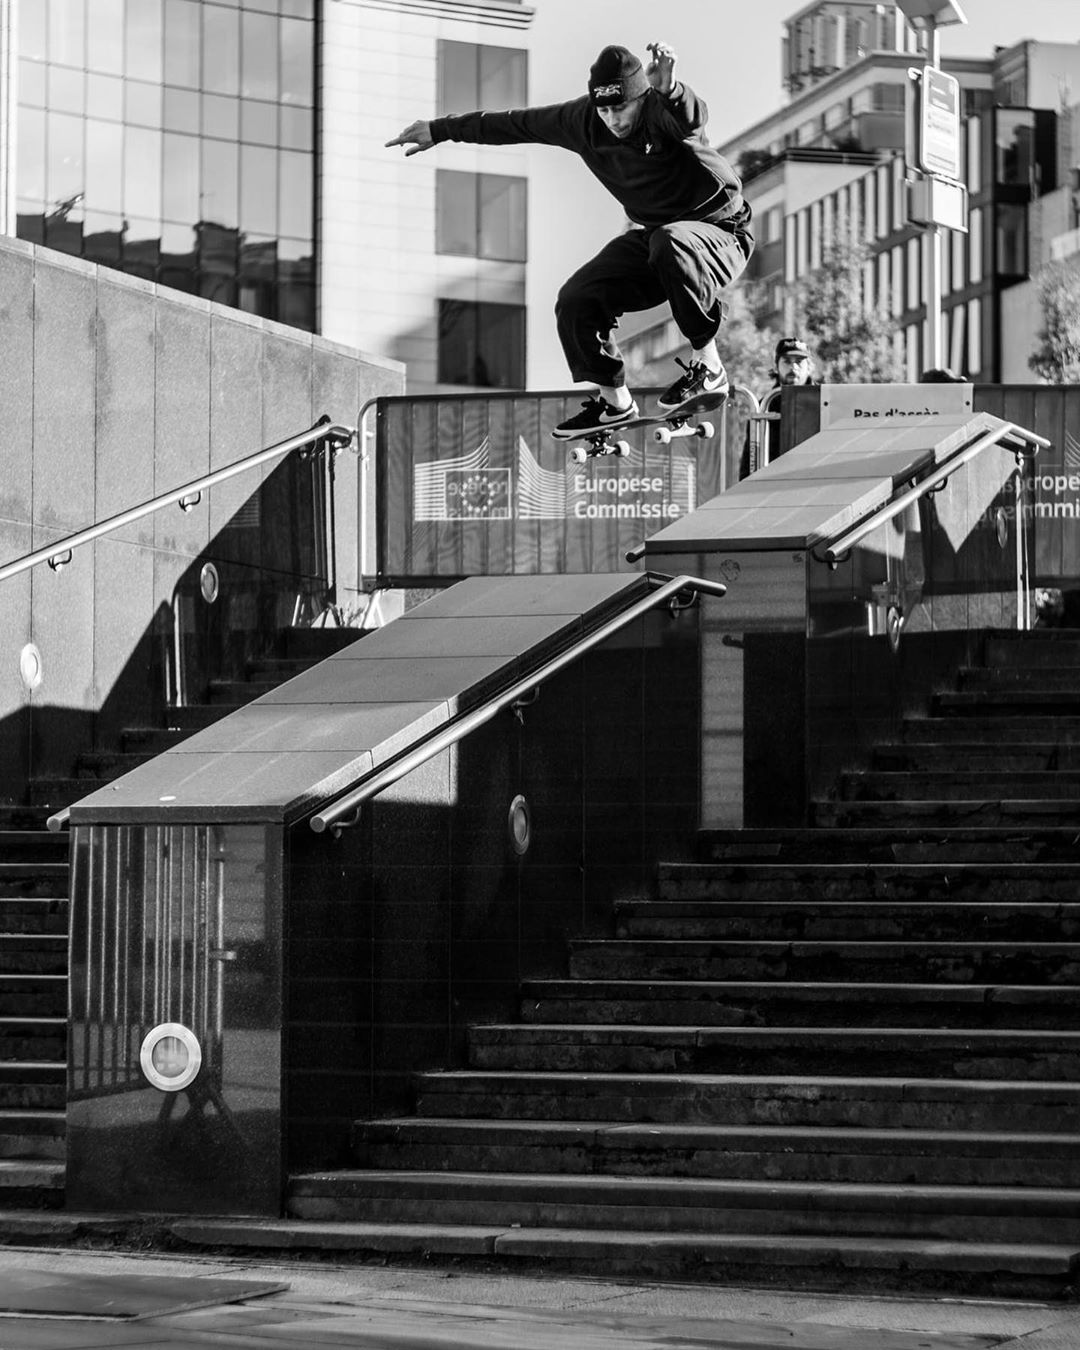 Jarne Verbruggen No Comply Images 7